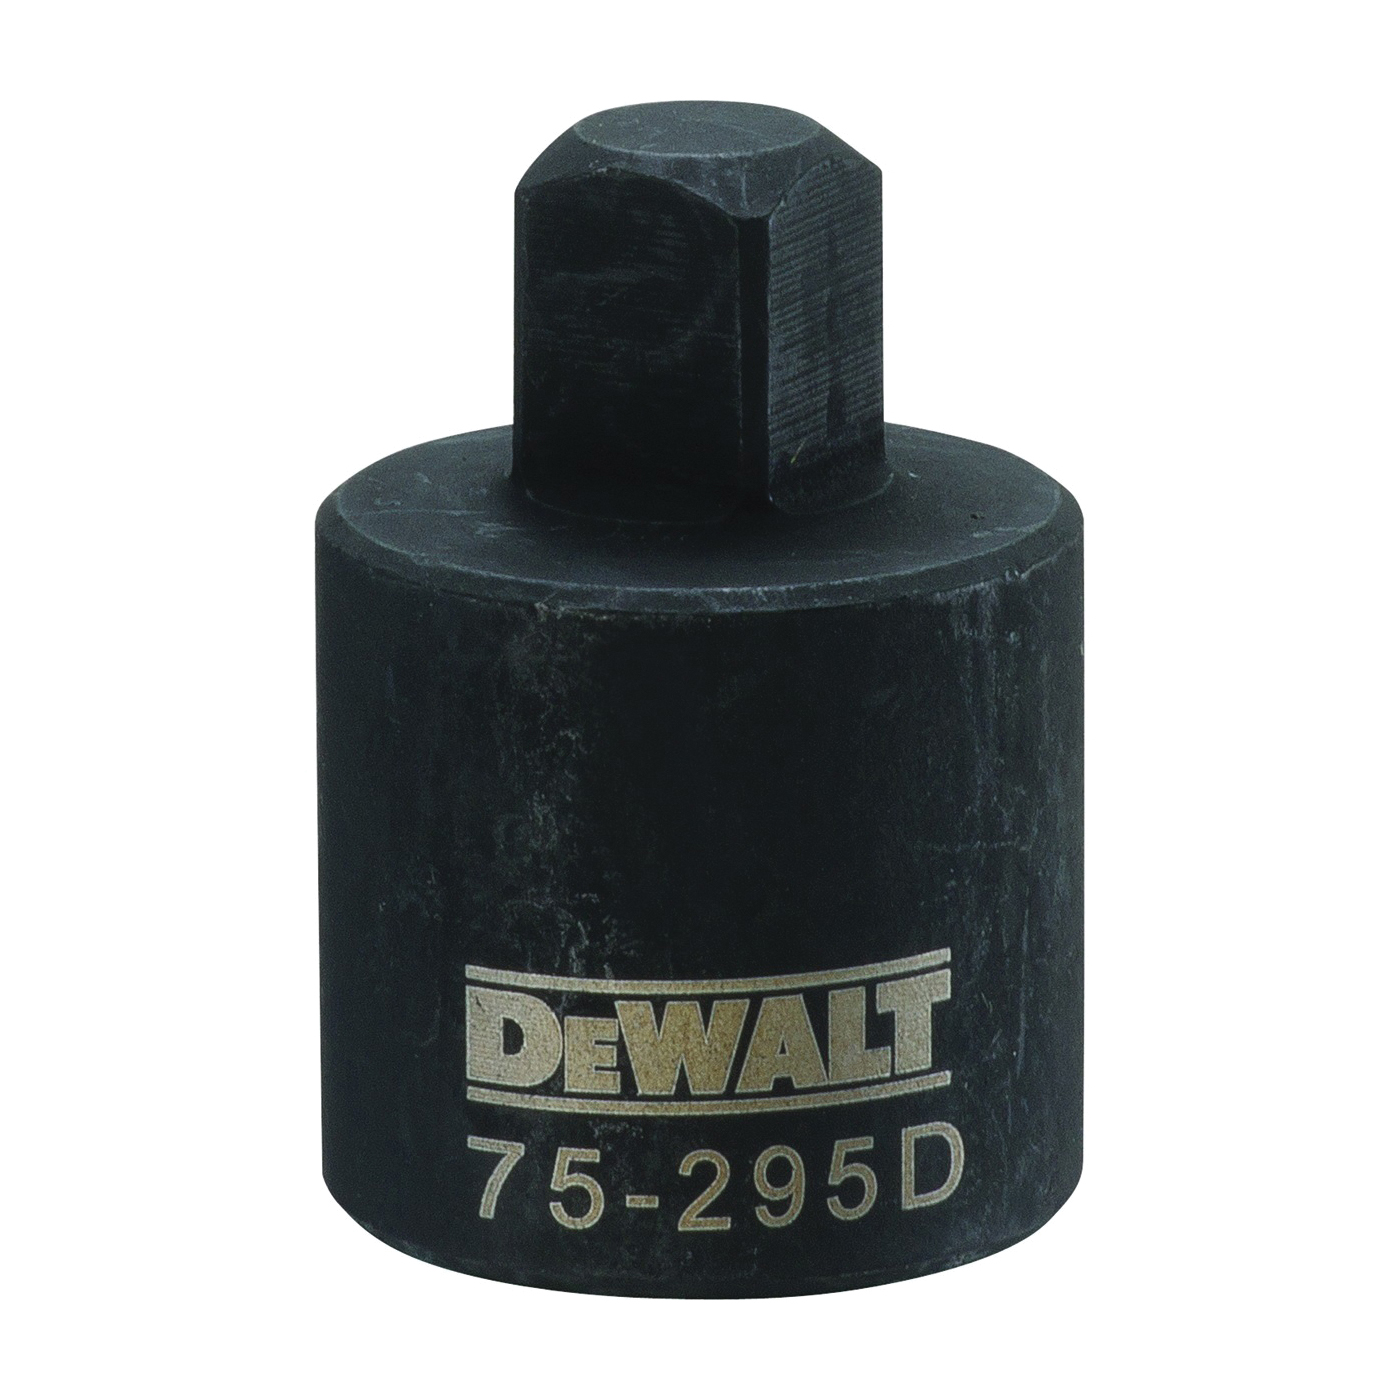 Picture of DeWALT DWMT75295OSP Reducing Impact Adapter, 3/4 in Drive, Female Drive, 1/2 in Output Drive, Male Output Drive